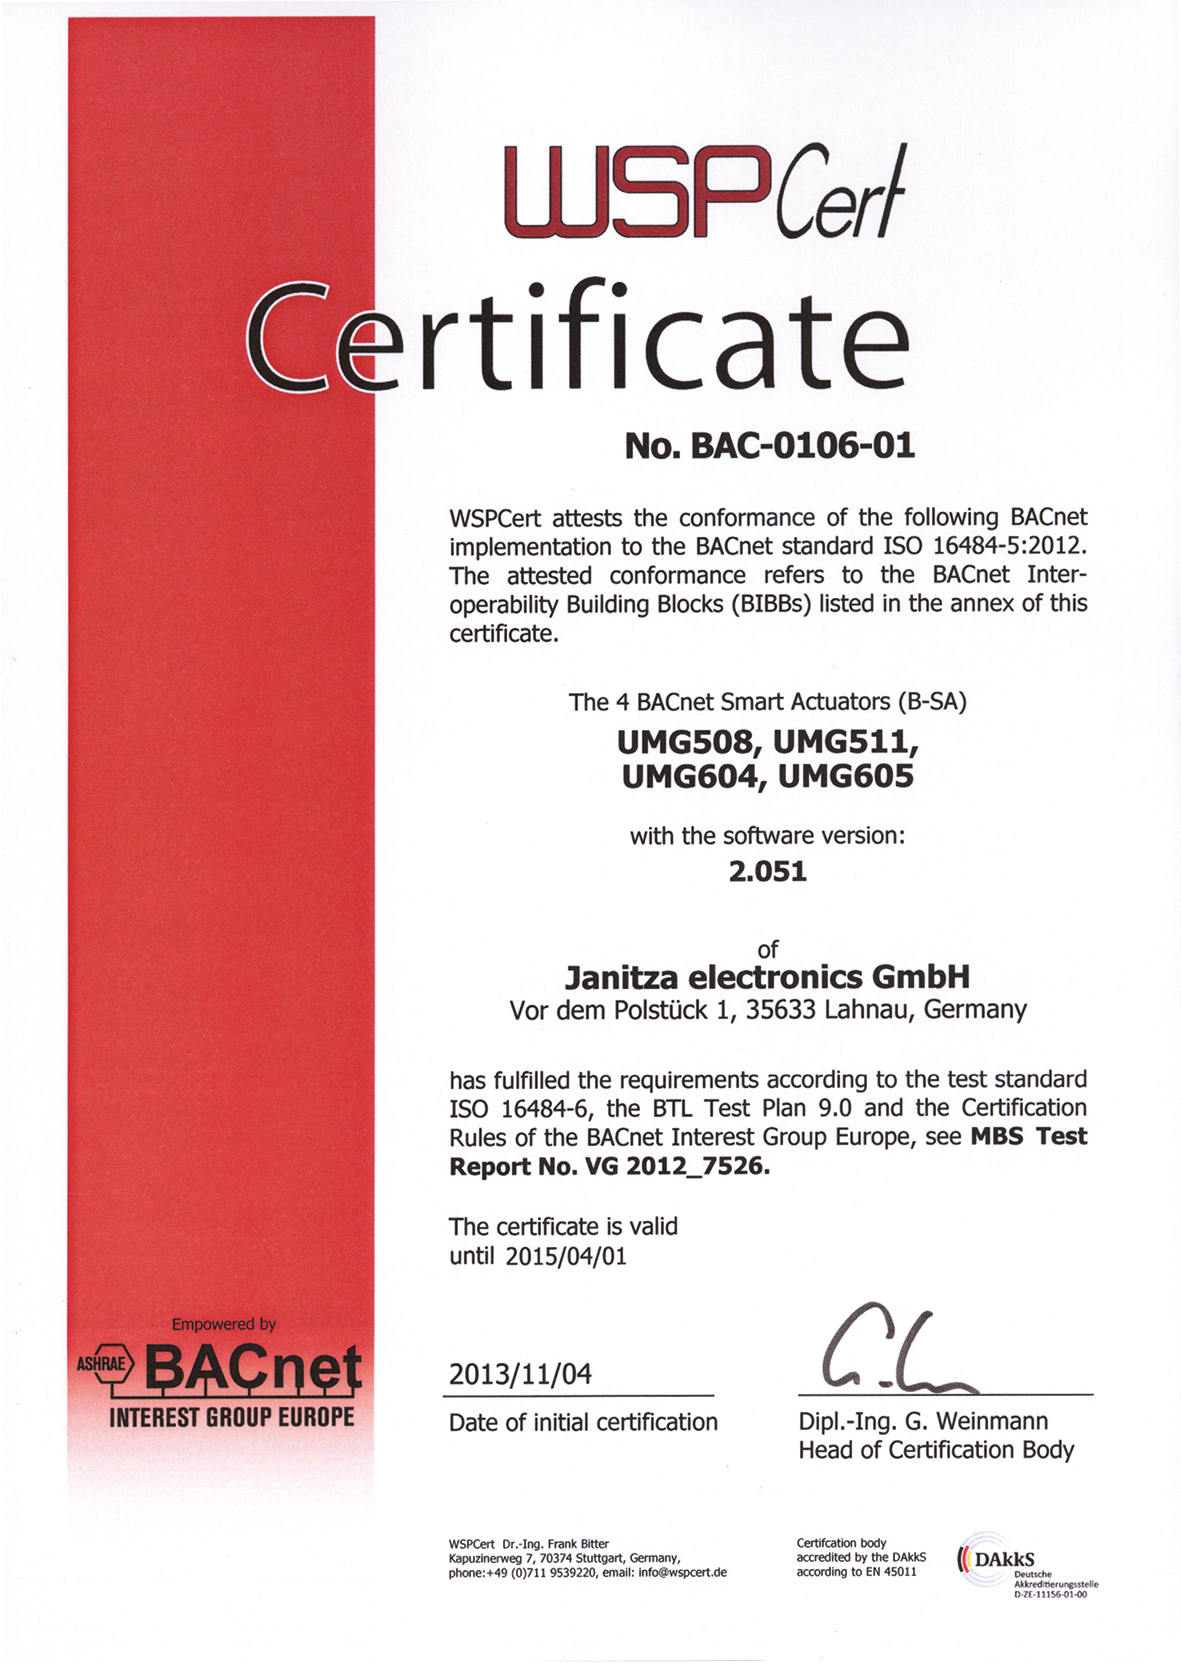 Image 3: The certificate of a national accreditation body confirms the conformity according to EN ISO/IEC 17025